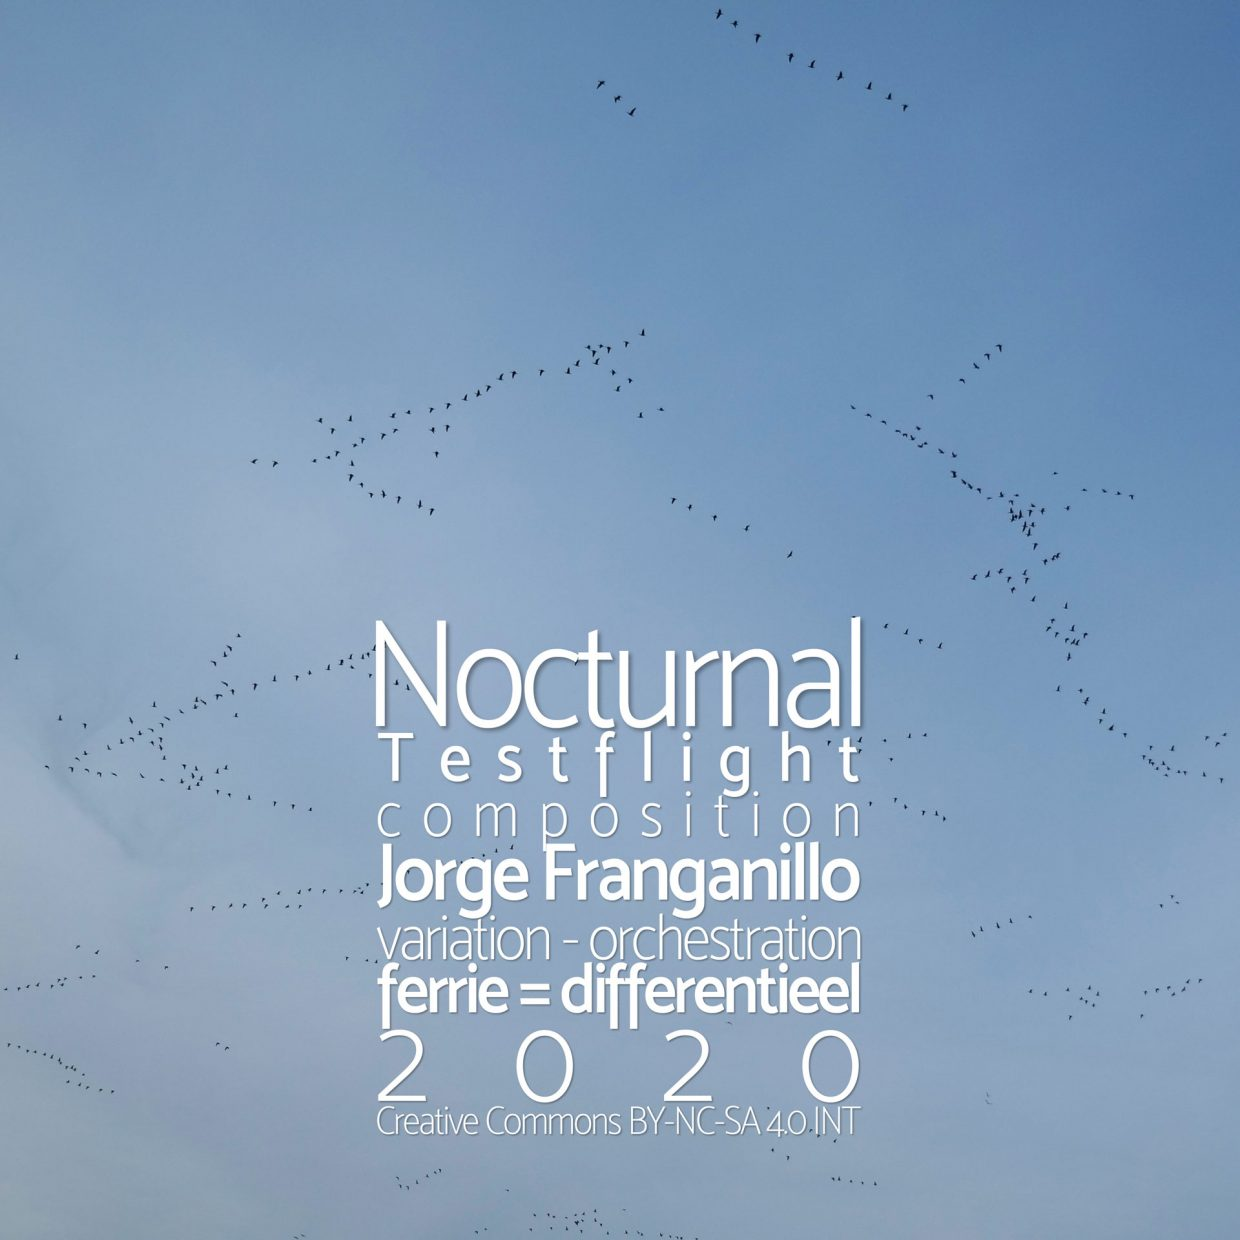 Nocturnal Testflight cover